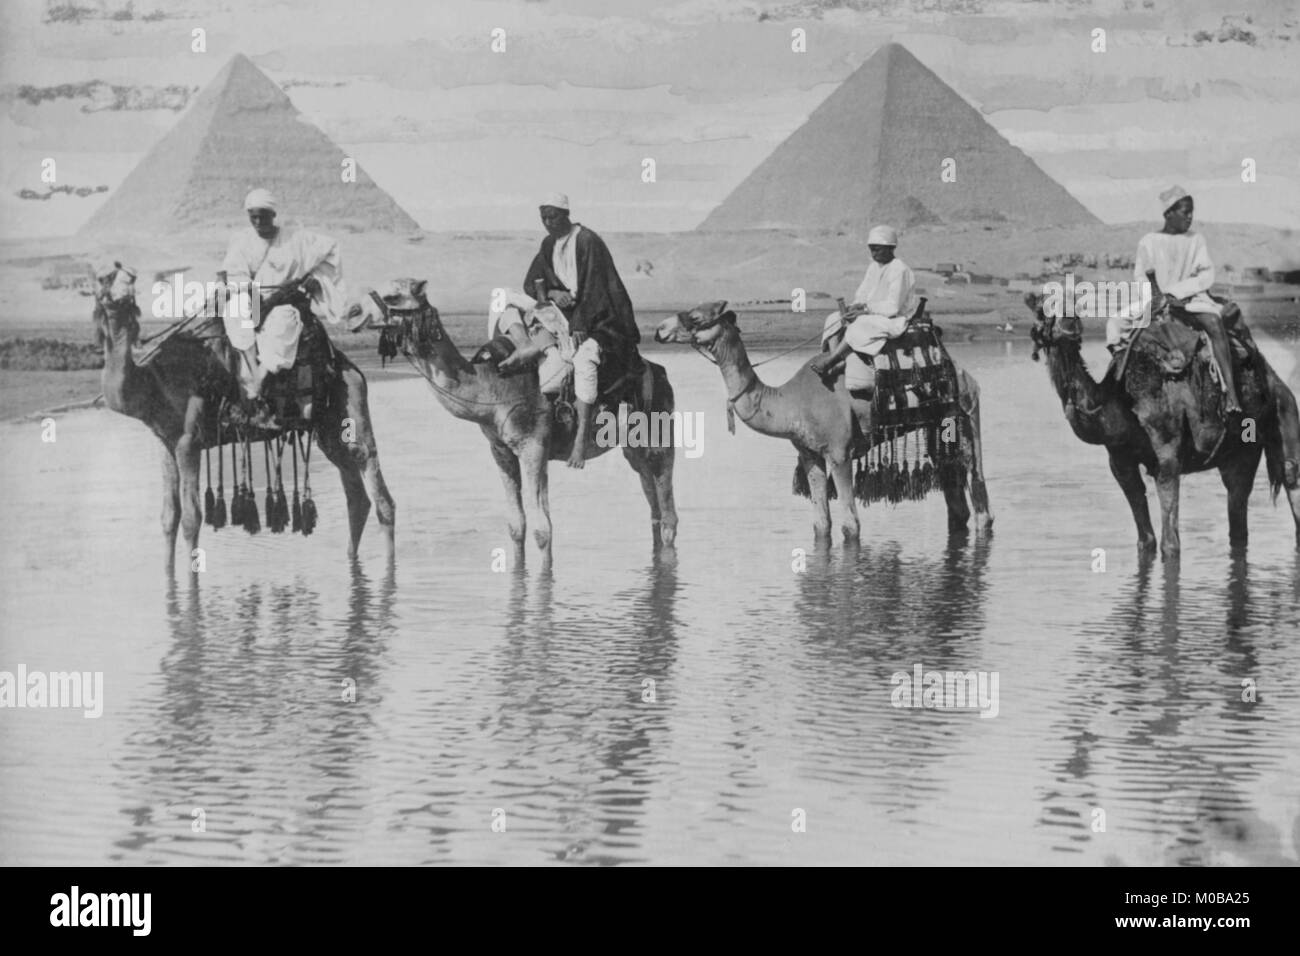 Camels with Native Riders on board stand in reflective floodwaters with a backdrop of the Pyramids of Giza In Egypt - Stock Image